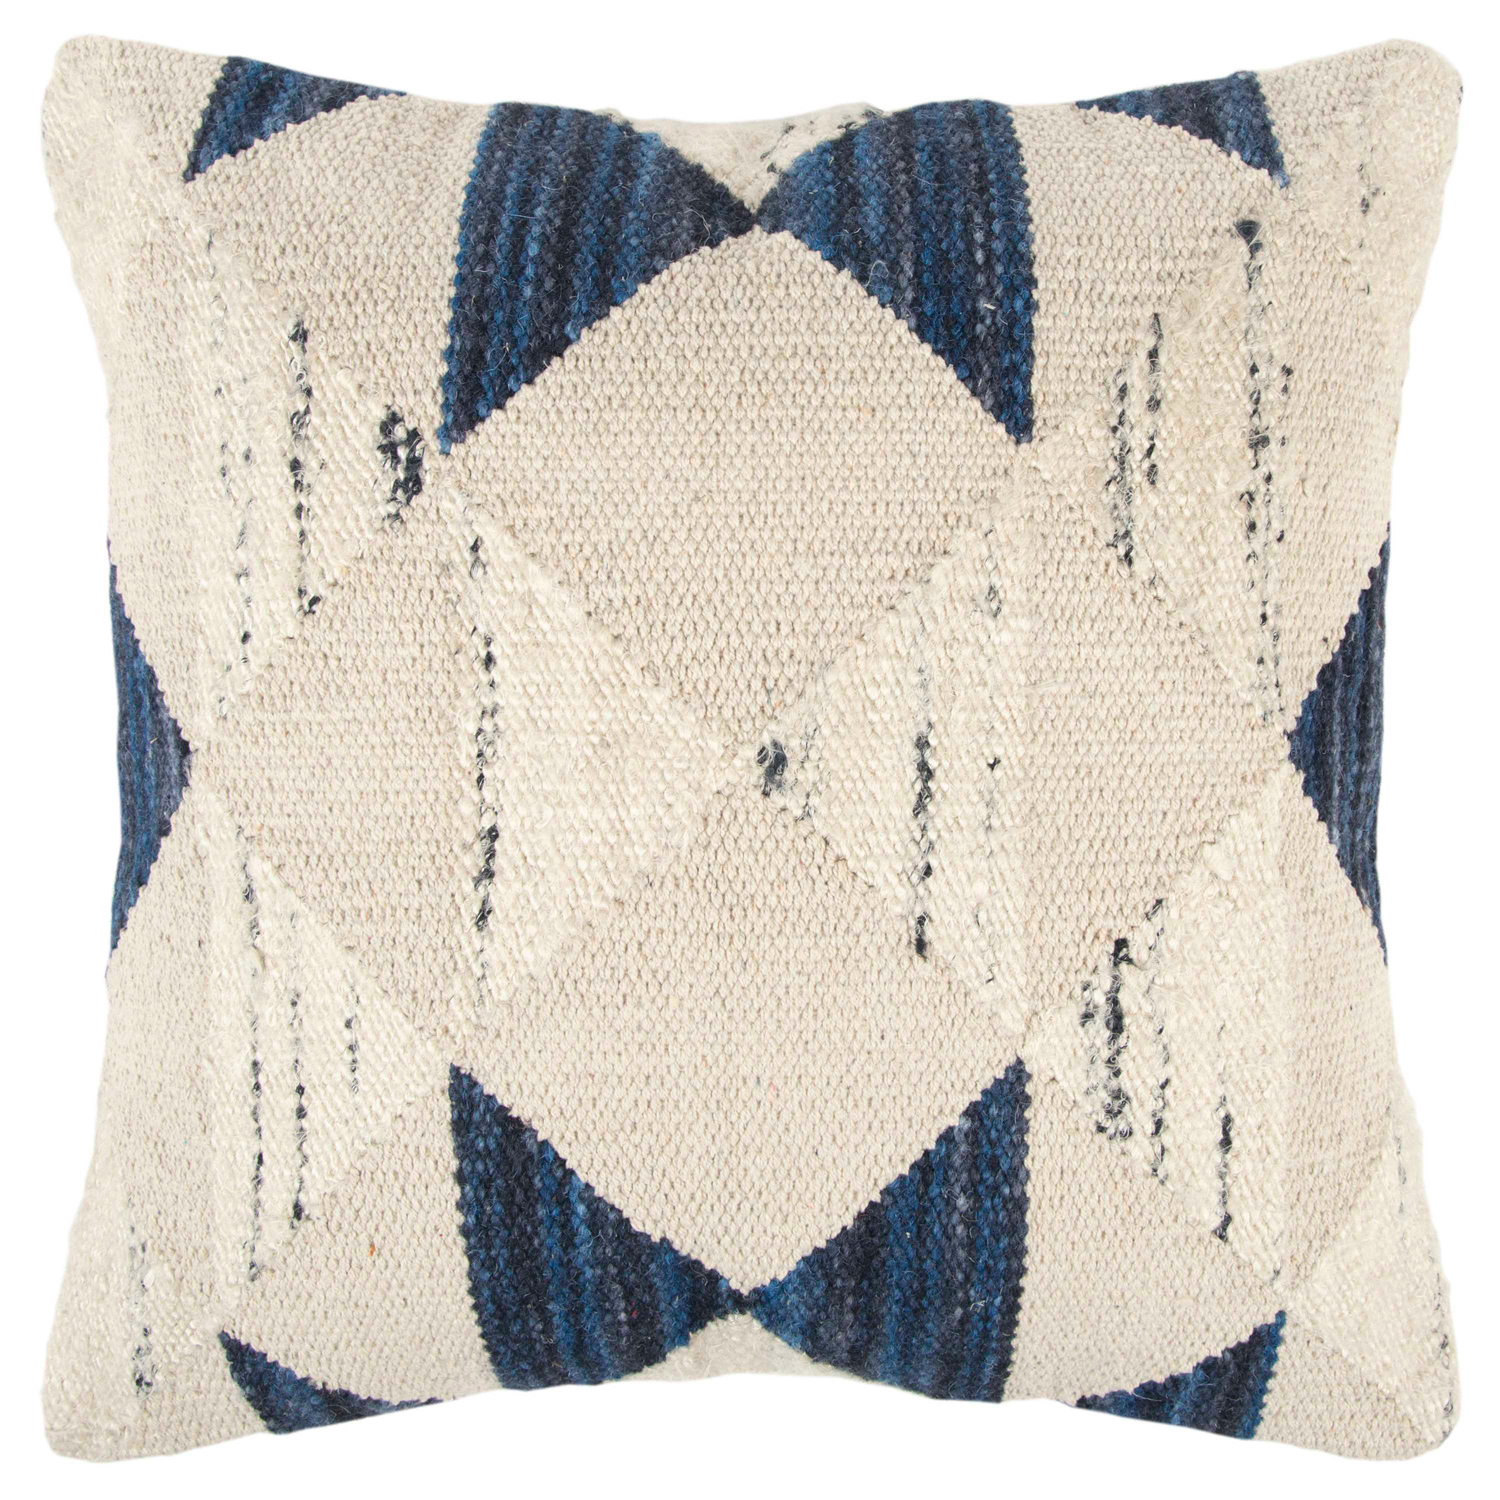 Geometric Indigo Wool Throw Pillow